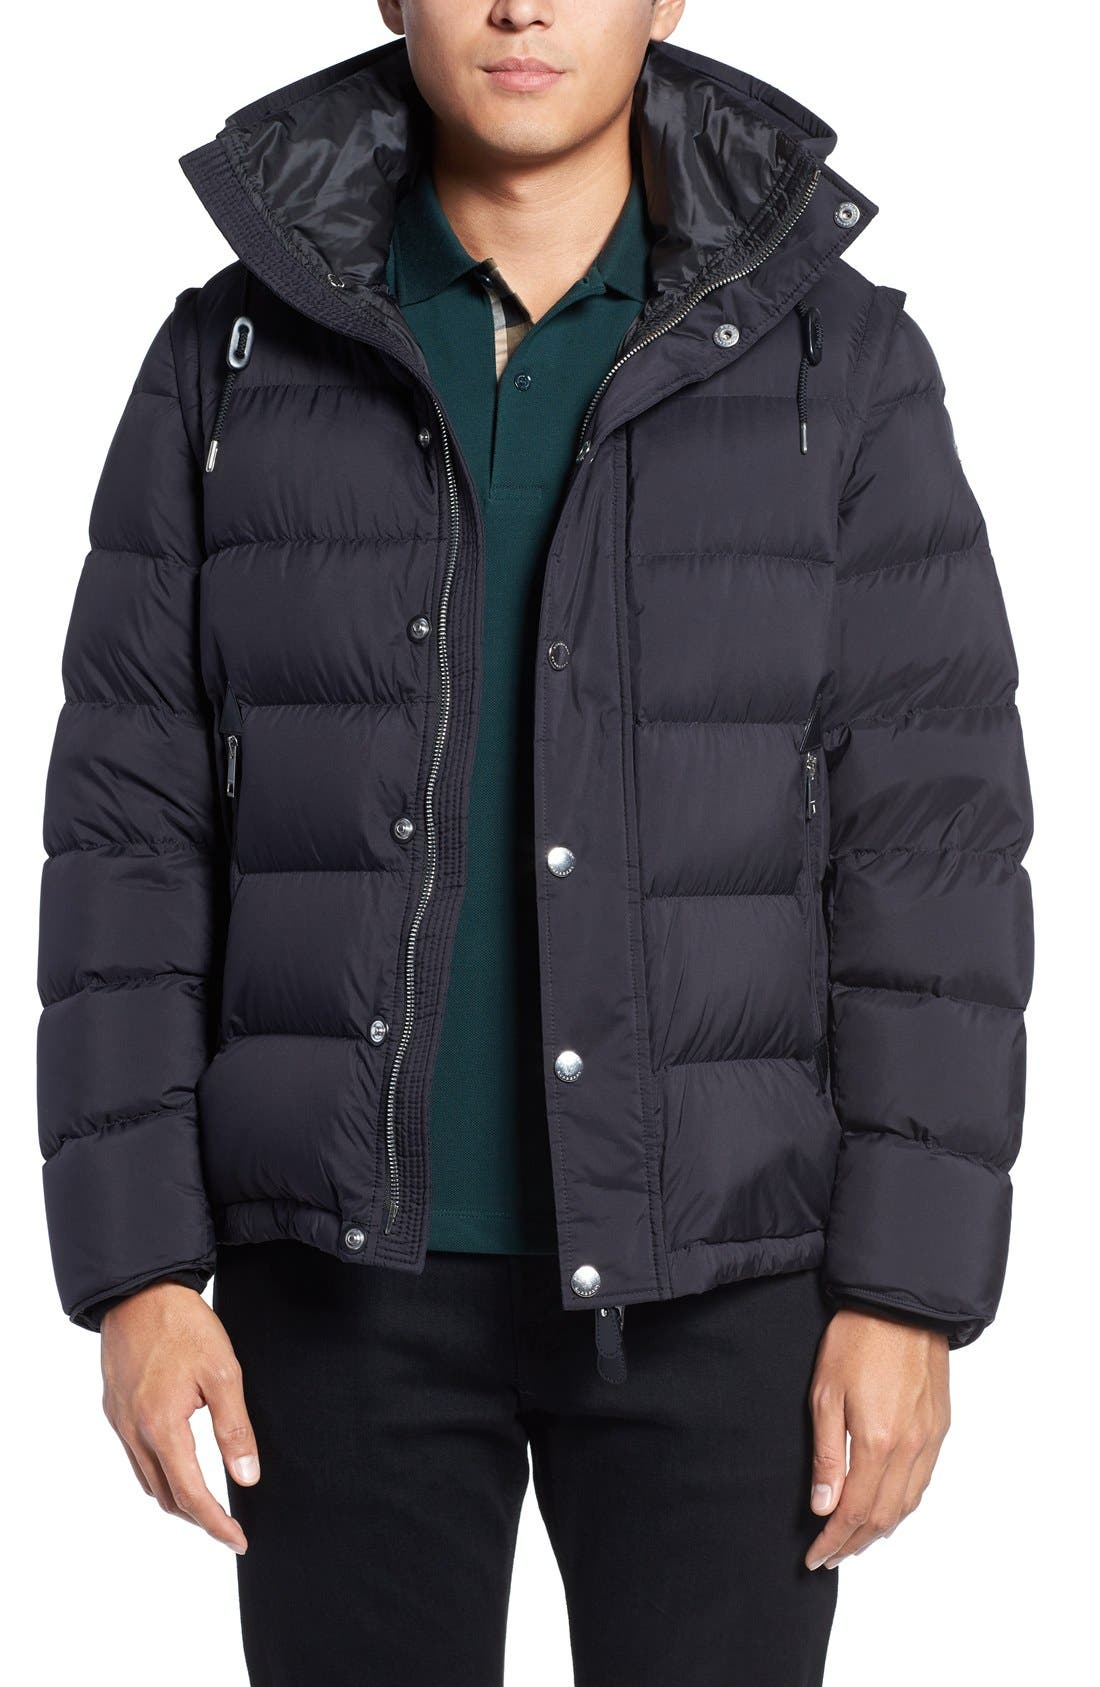 Convertible Quilted Jacket,                         Main,                         color, Black